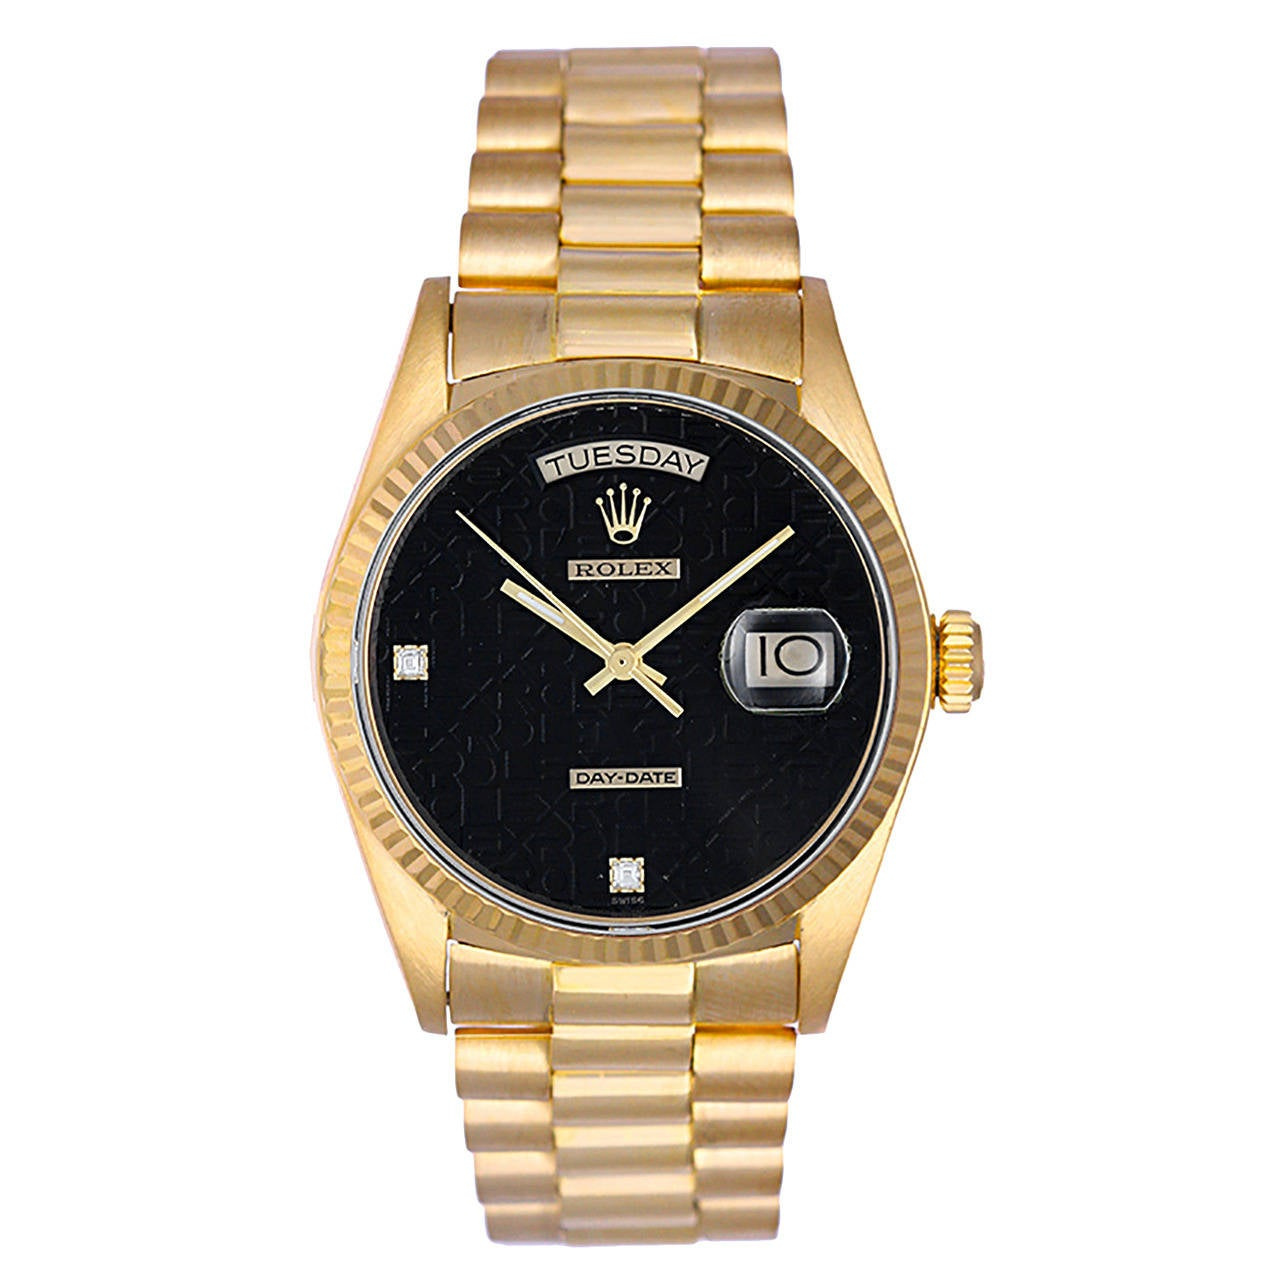 Rolex Gold Day-Date Black Jubilee Dial President Wristwatch Ref 18038 For Sale